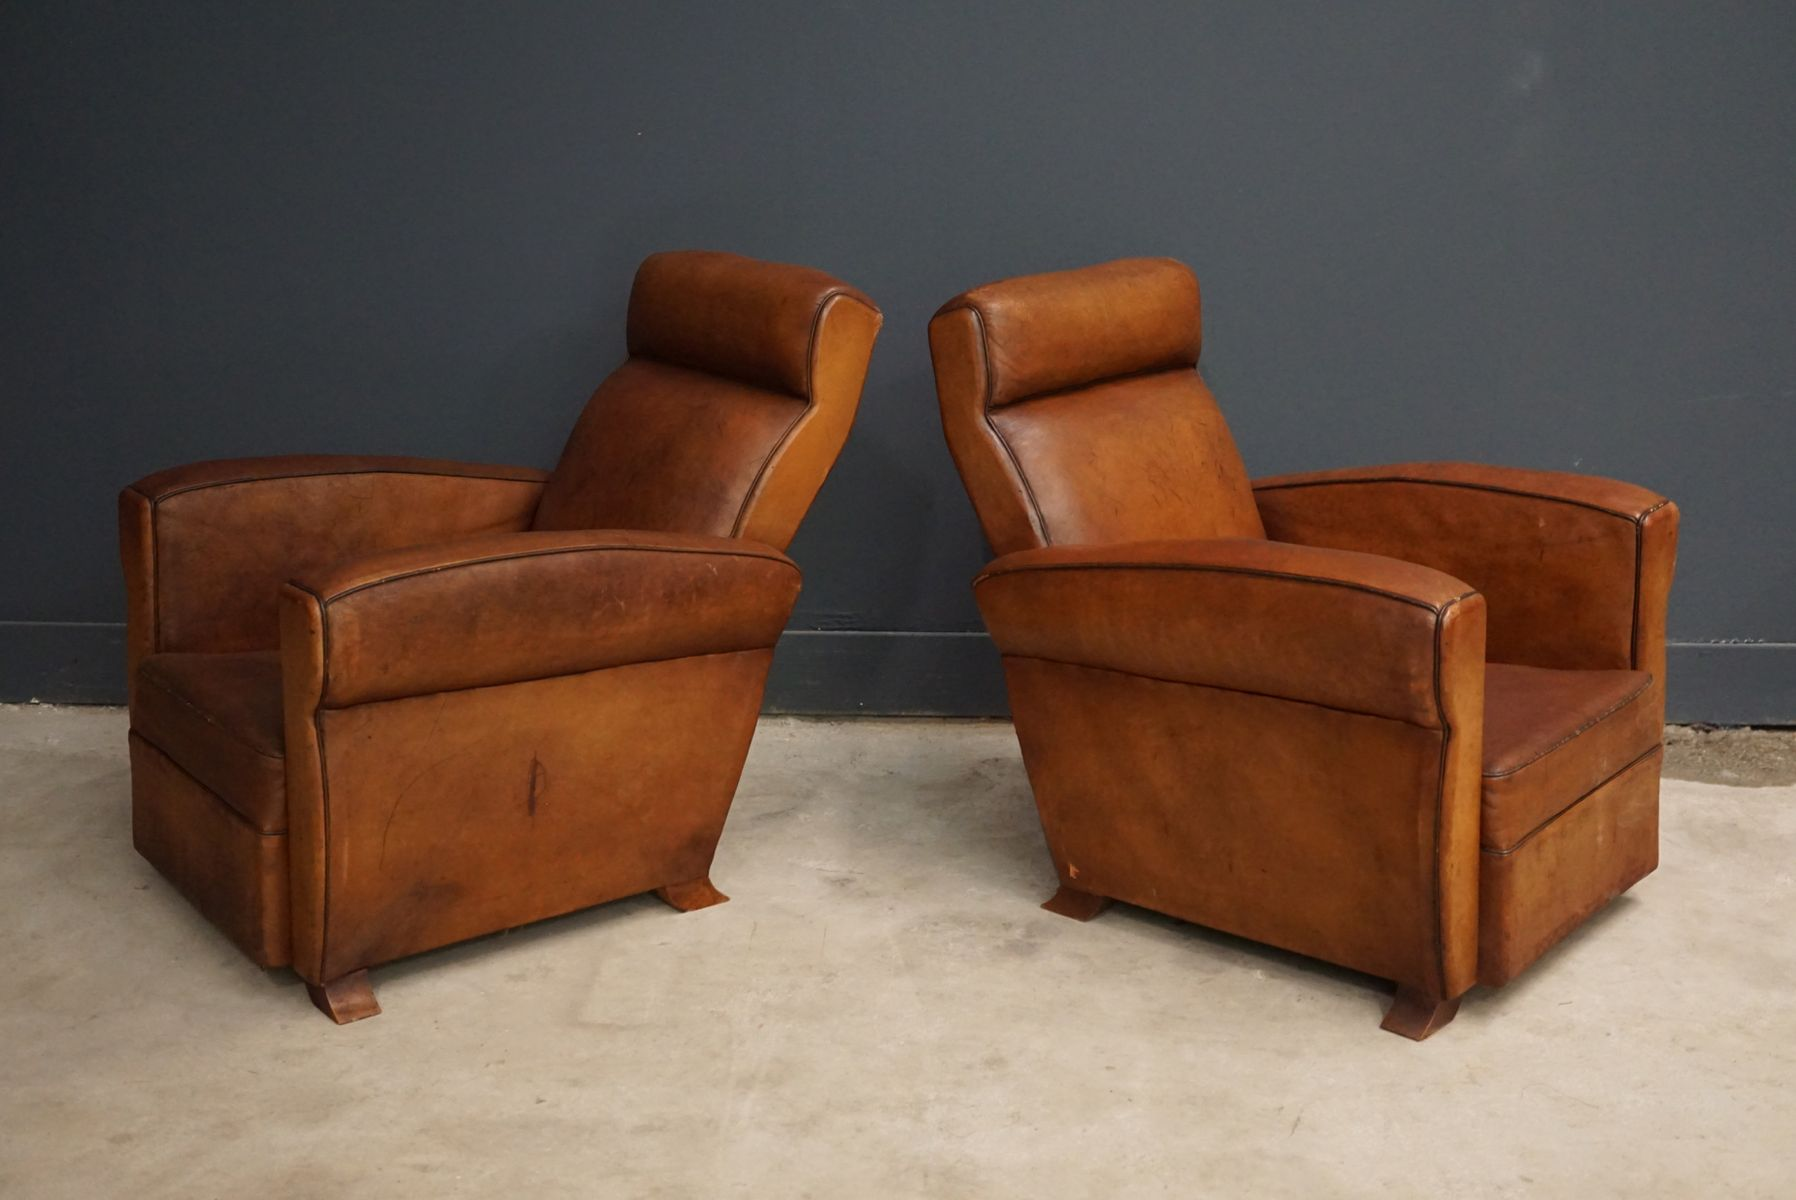 French Cognac Leather Club Chairs 1940s Set of 2 for sale at Pamono